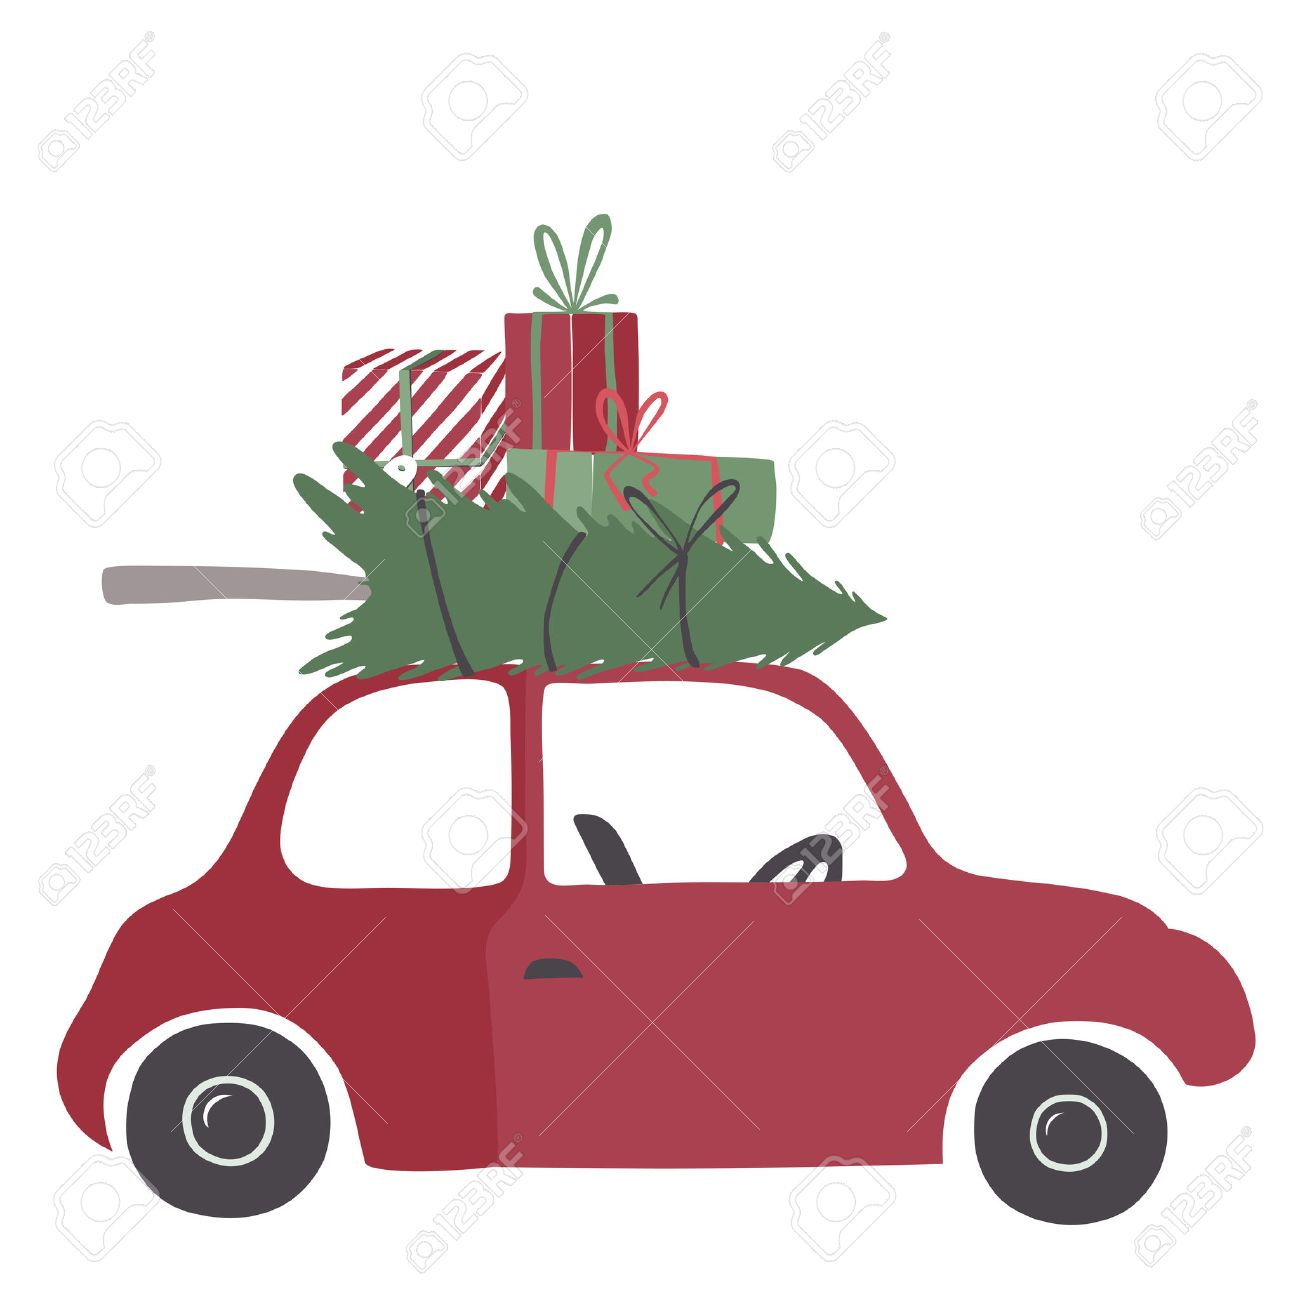 Spesial christmas delivery vector Illustration. Small red car...